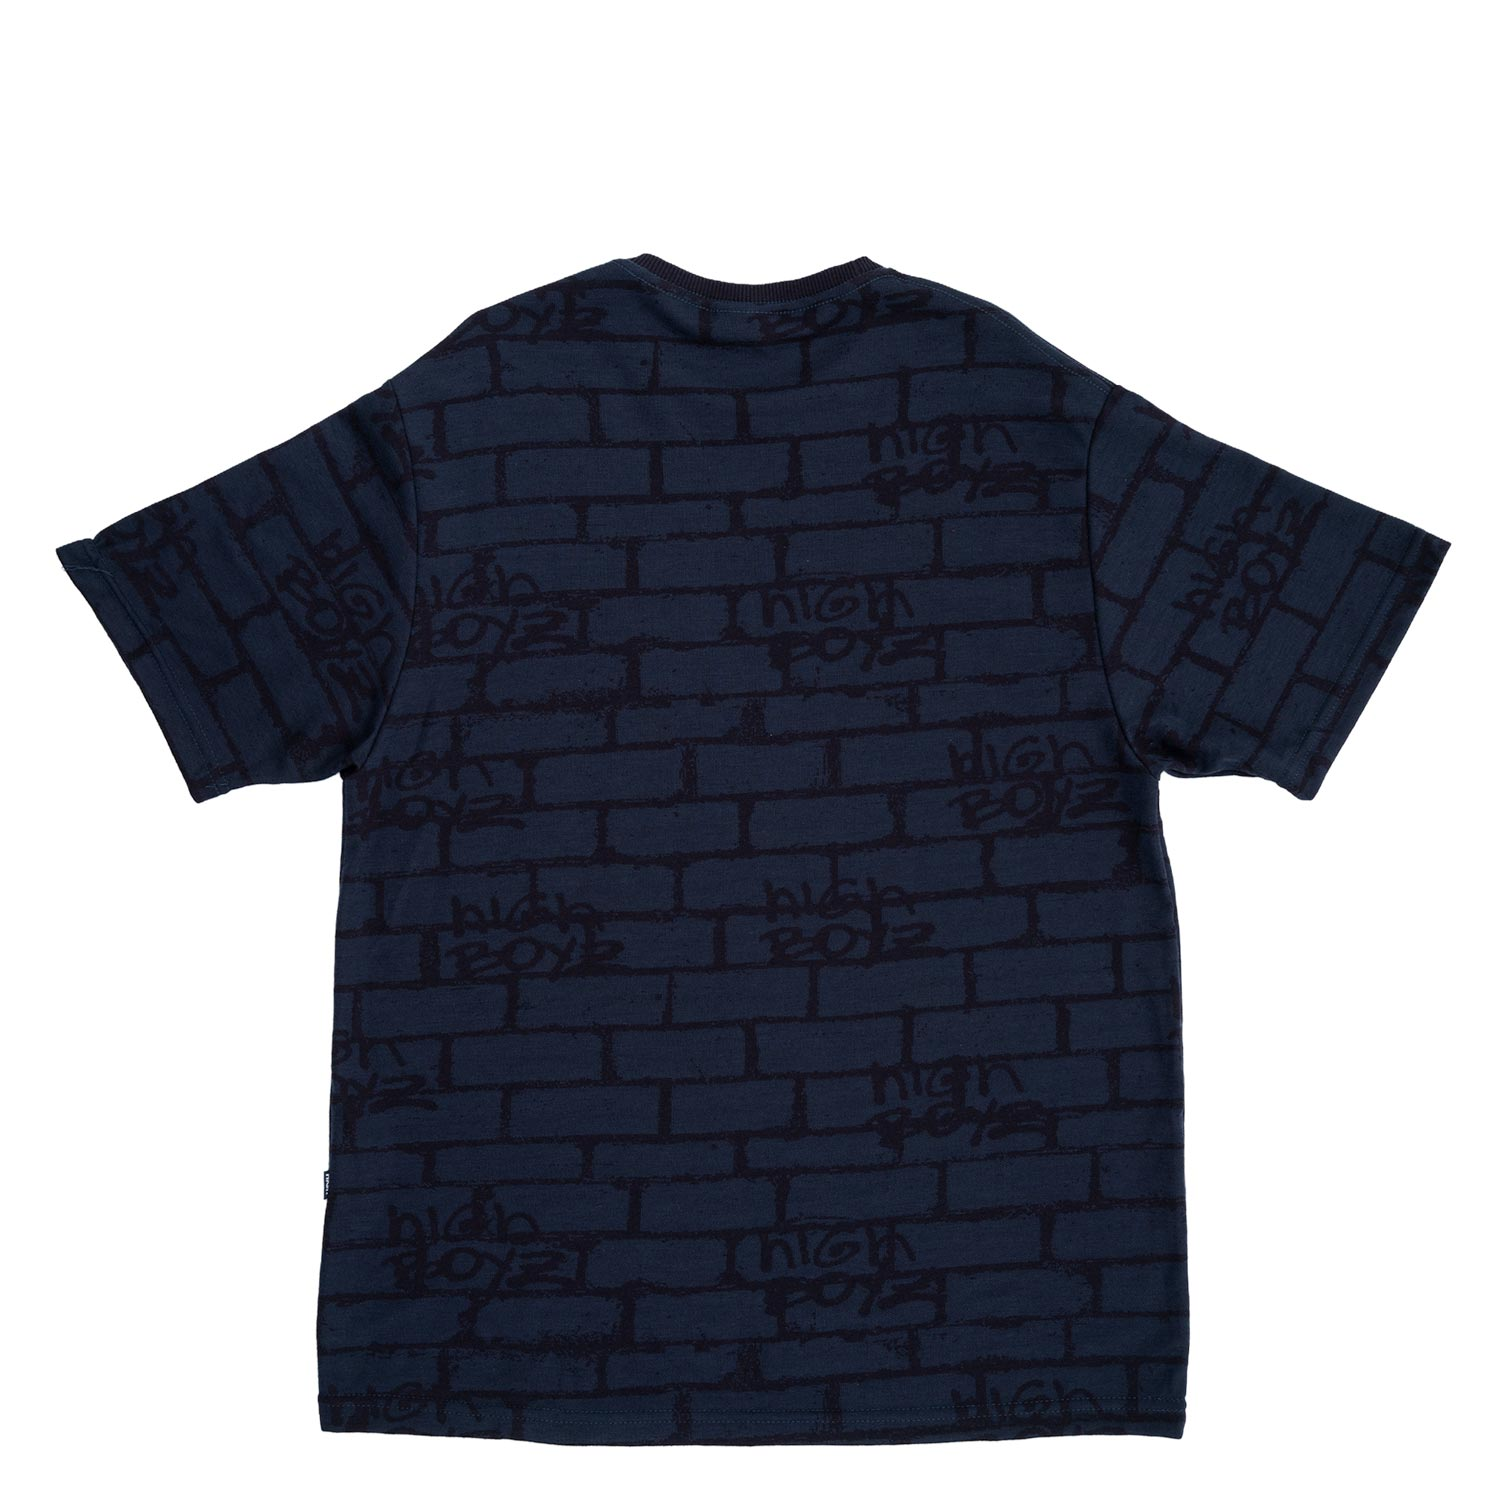 Camiseta High Tee Jacquard Tee Bricks Navy